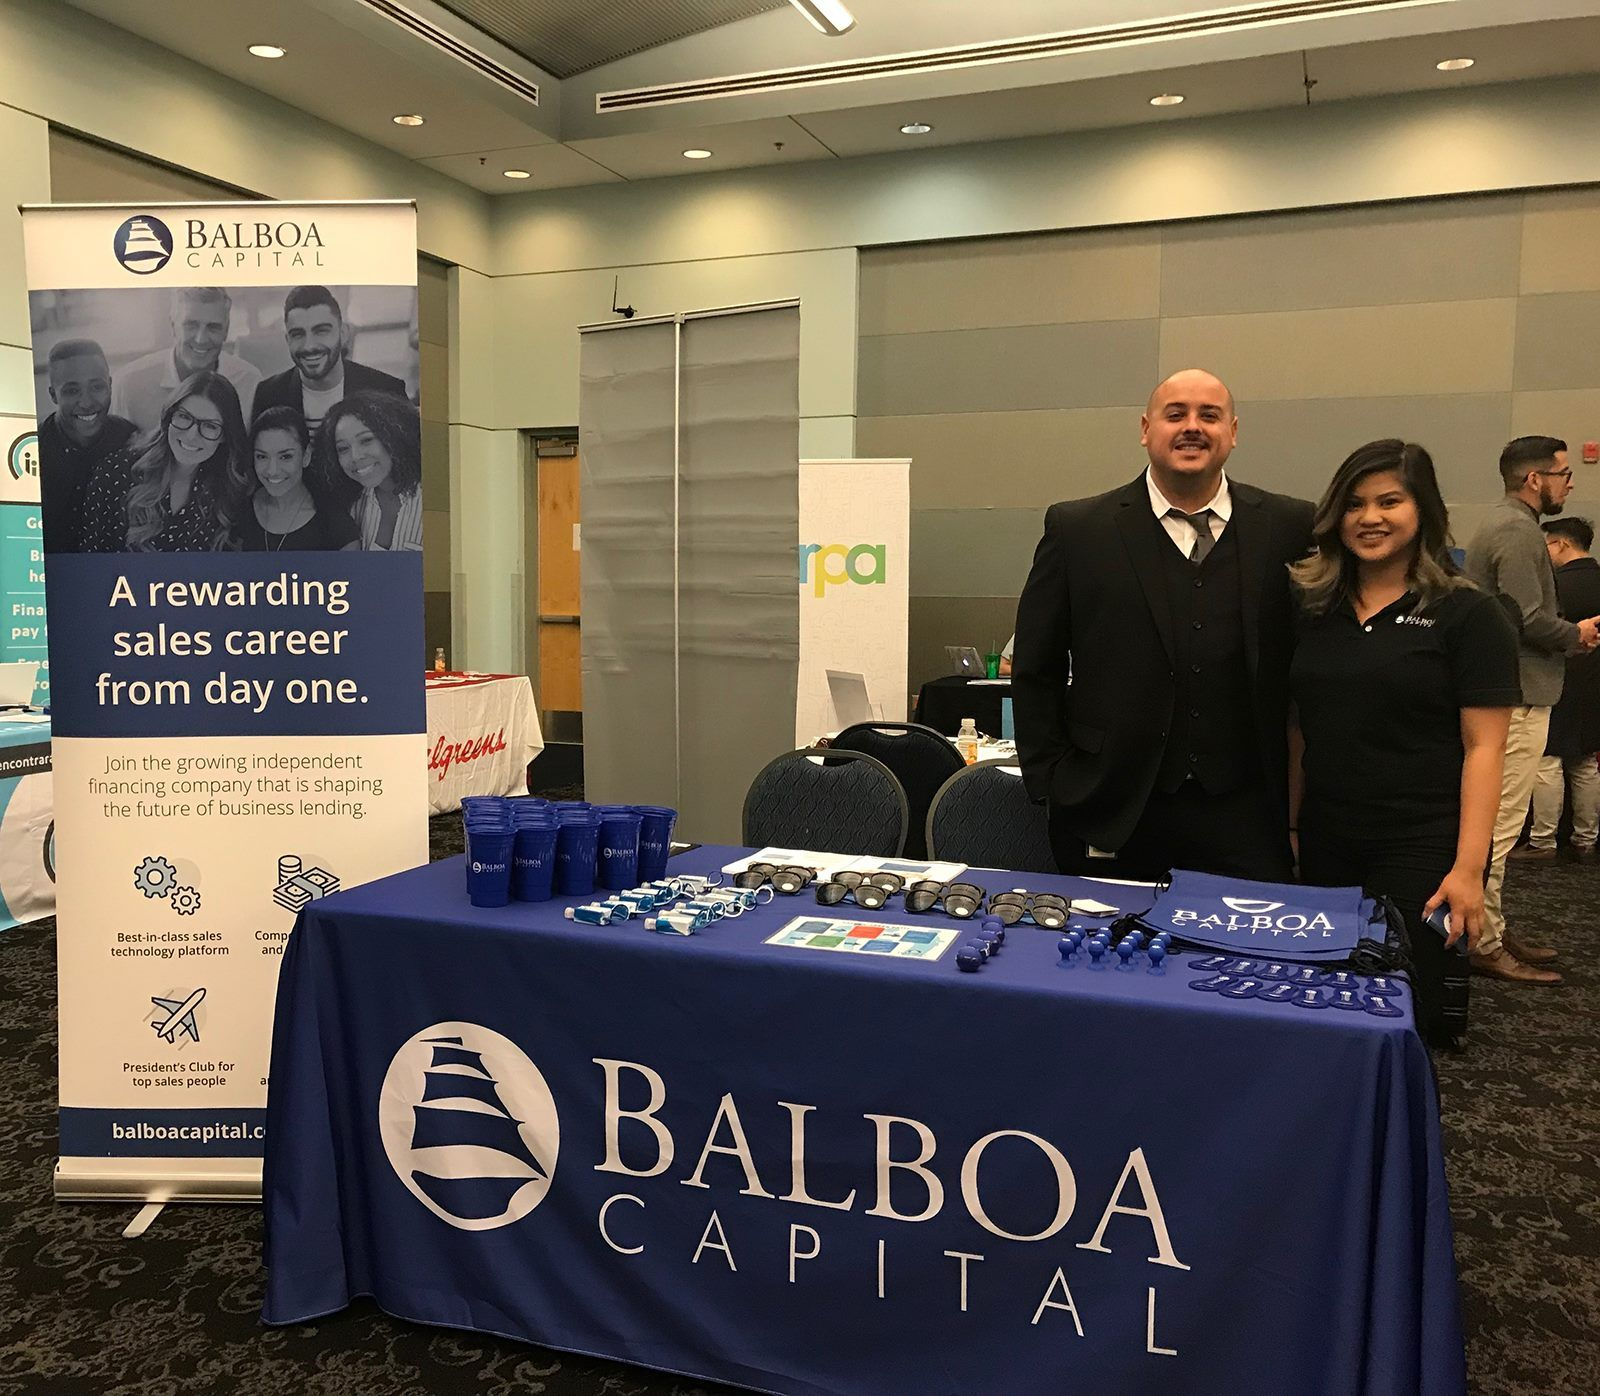 Balboa Capital S Booth At California State University Los Angeles Spring 2018 Career Fair We Met With Students And An Job Fair College Job Job Opportunities